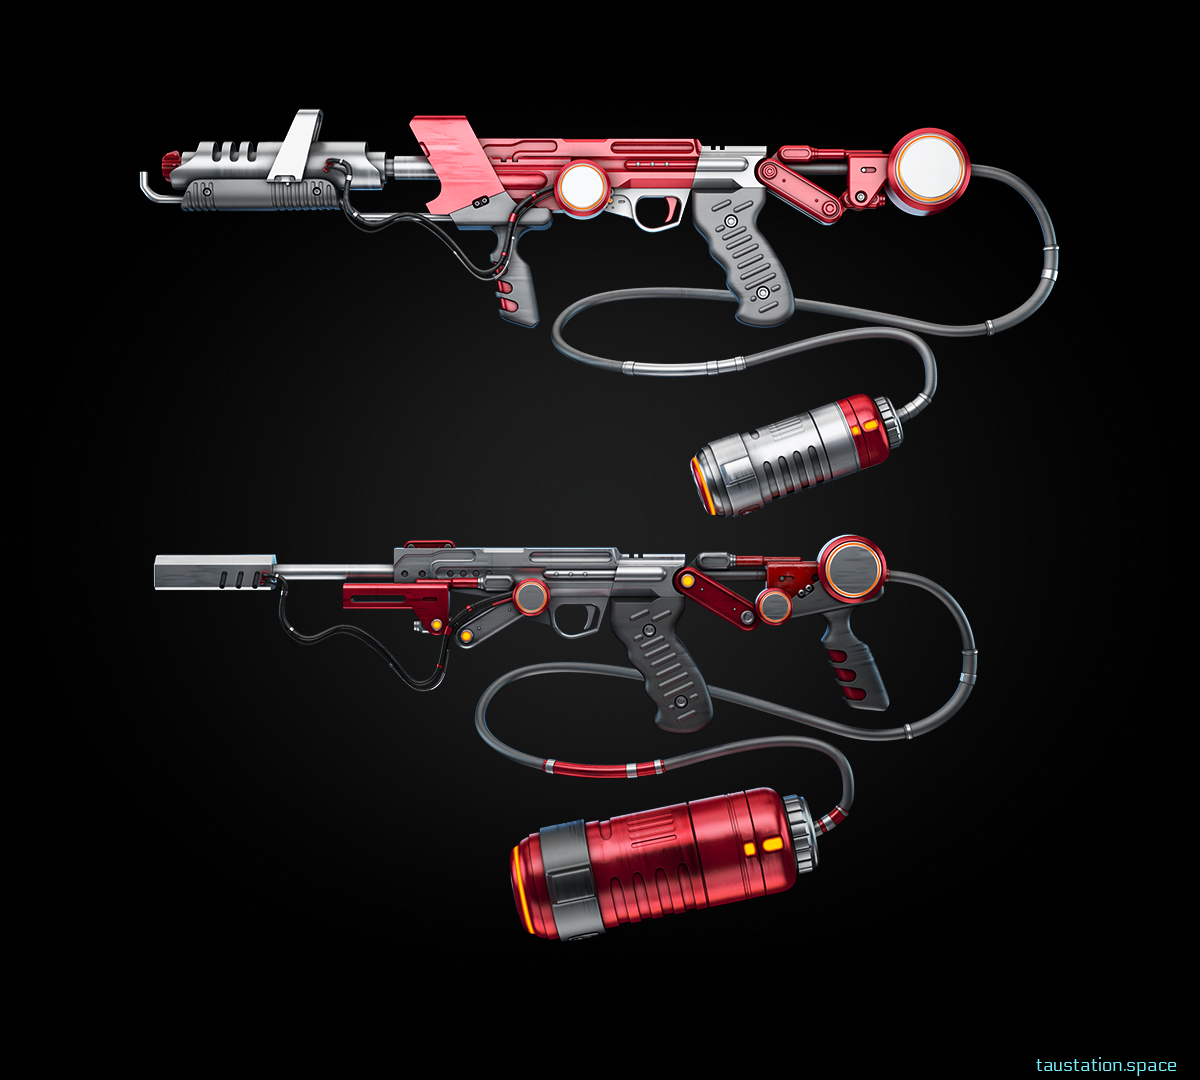 2 red flame throwers